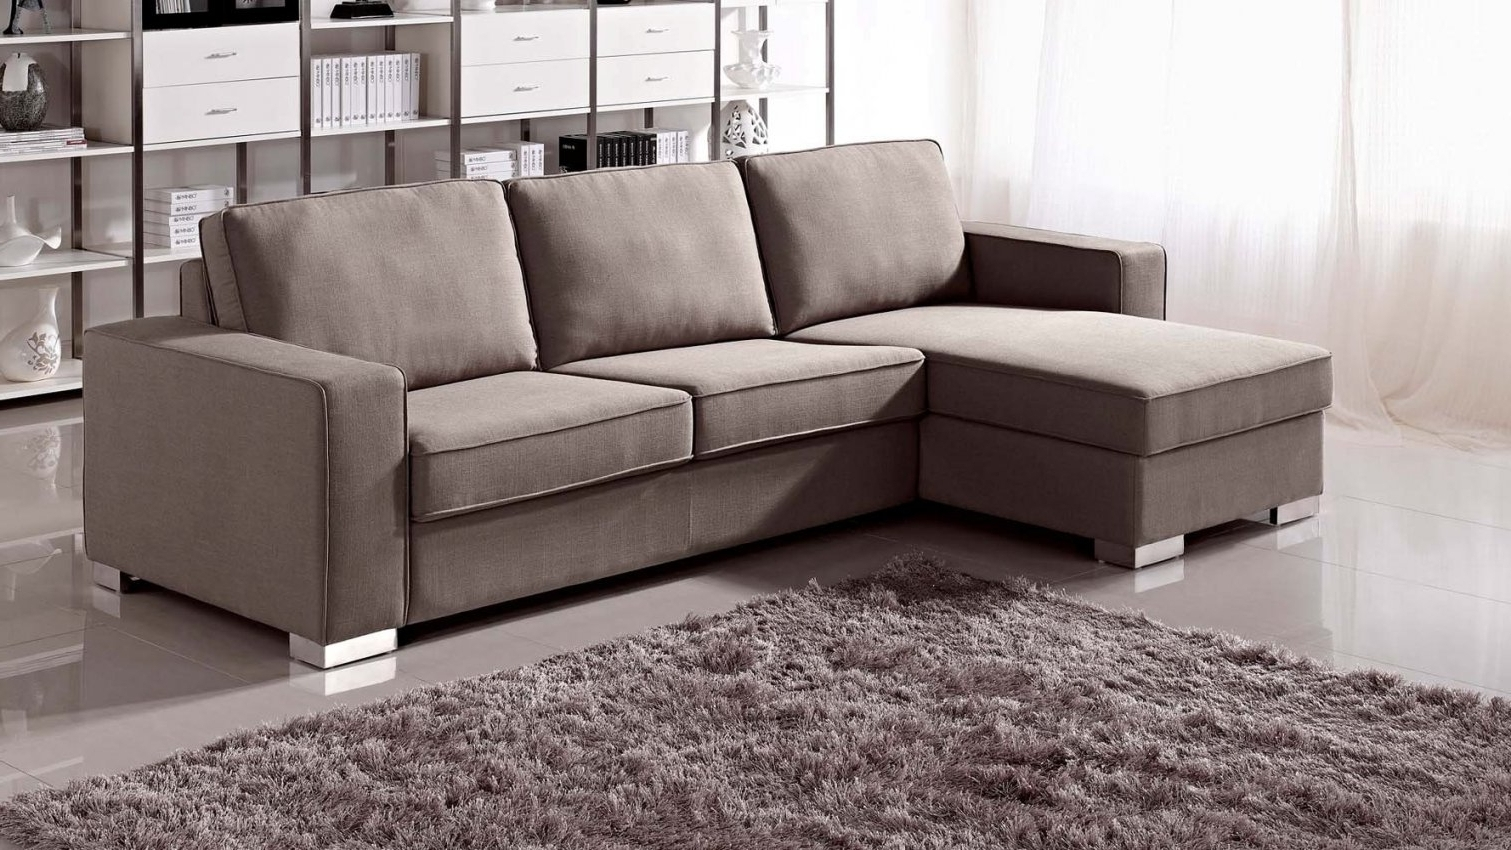 Preferred Sectional Sleeper Sofa With Chaise 29 In Sofa Design Ideas Inside Sleeper Sofa Chaises (View 7 of 15)